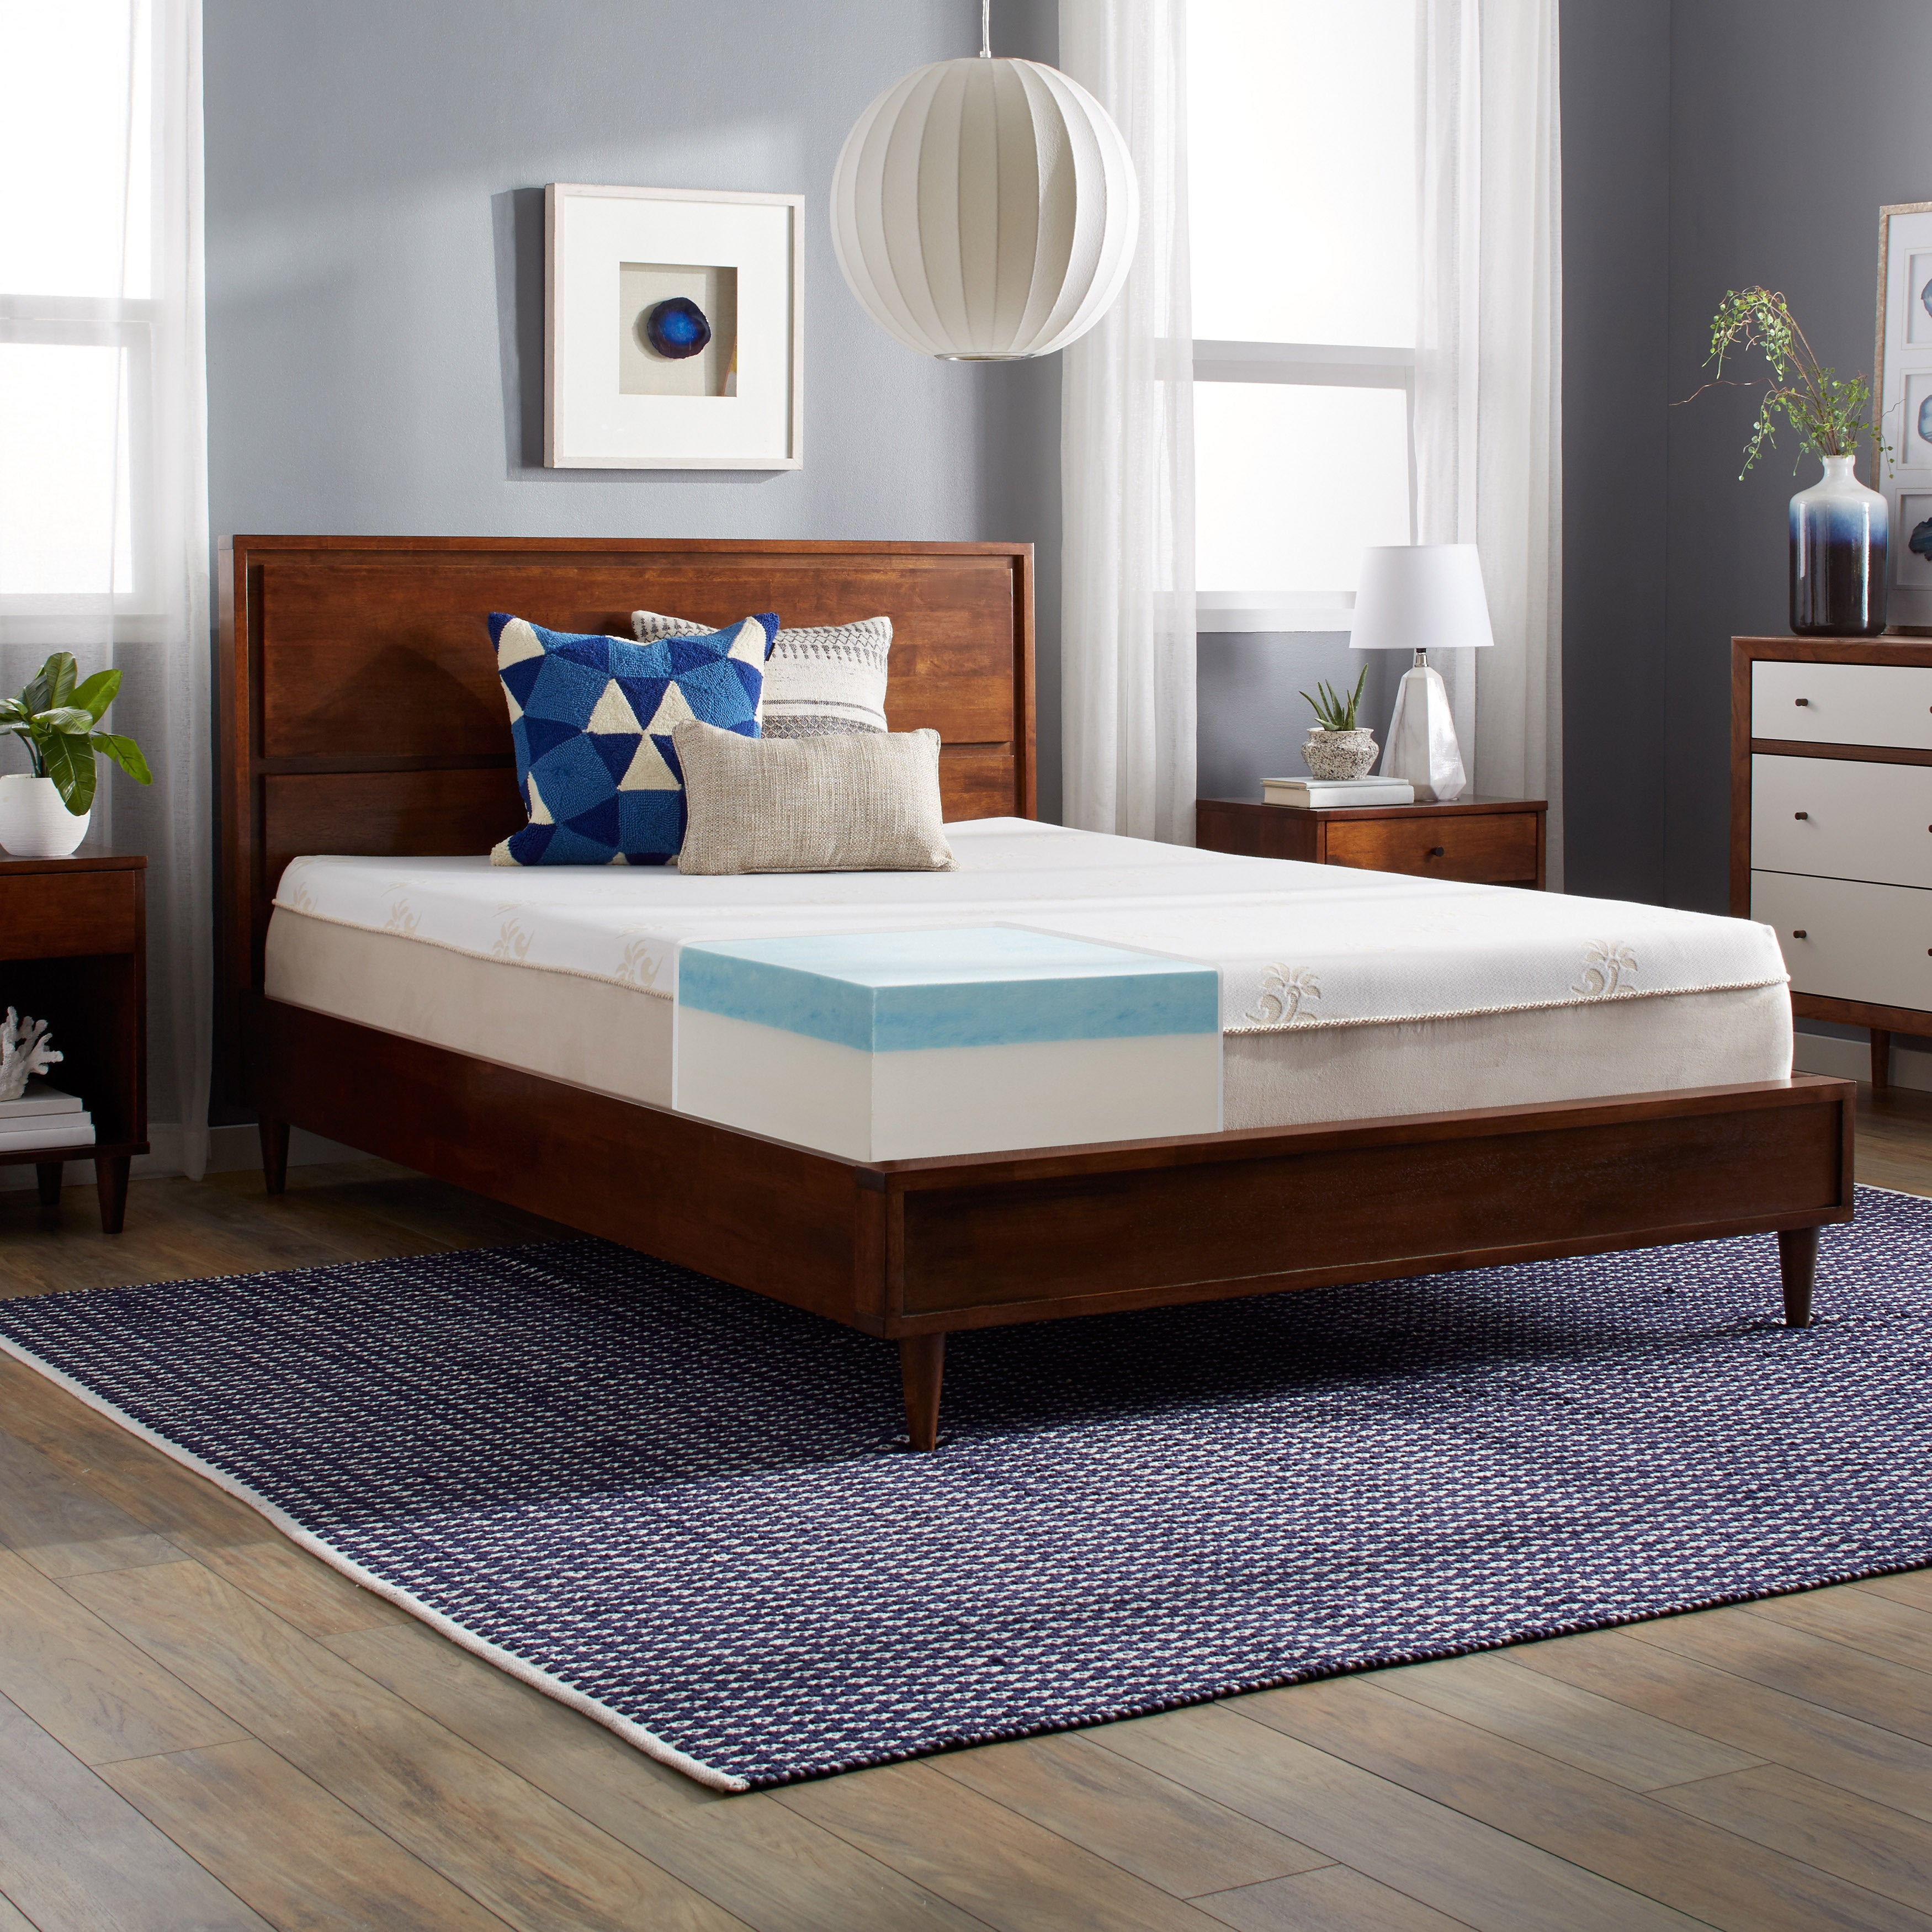 queen reviews size picture goodbed mattress mattresses restonic com select comfortcare